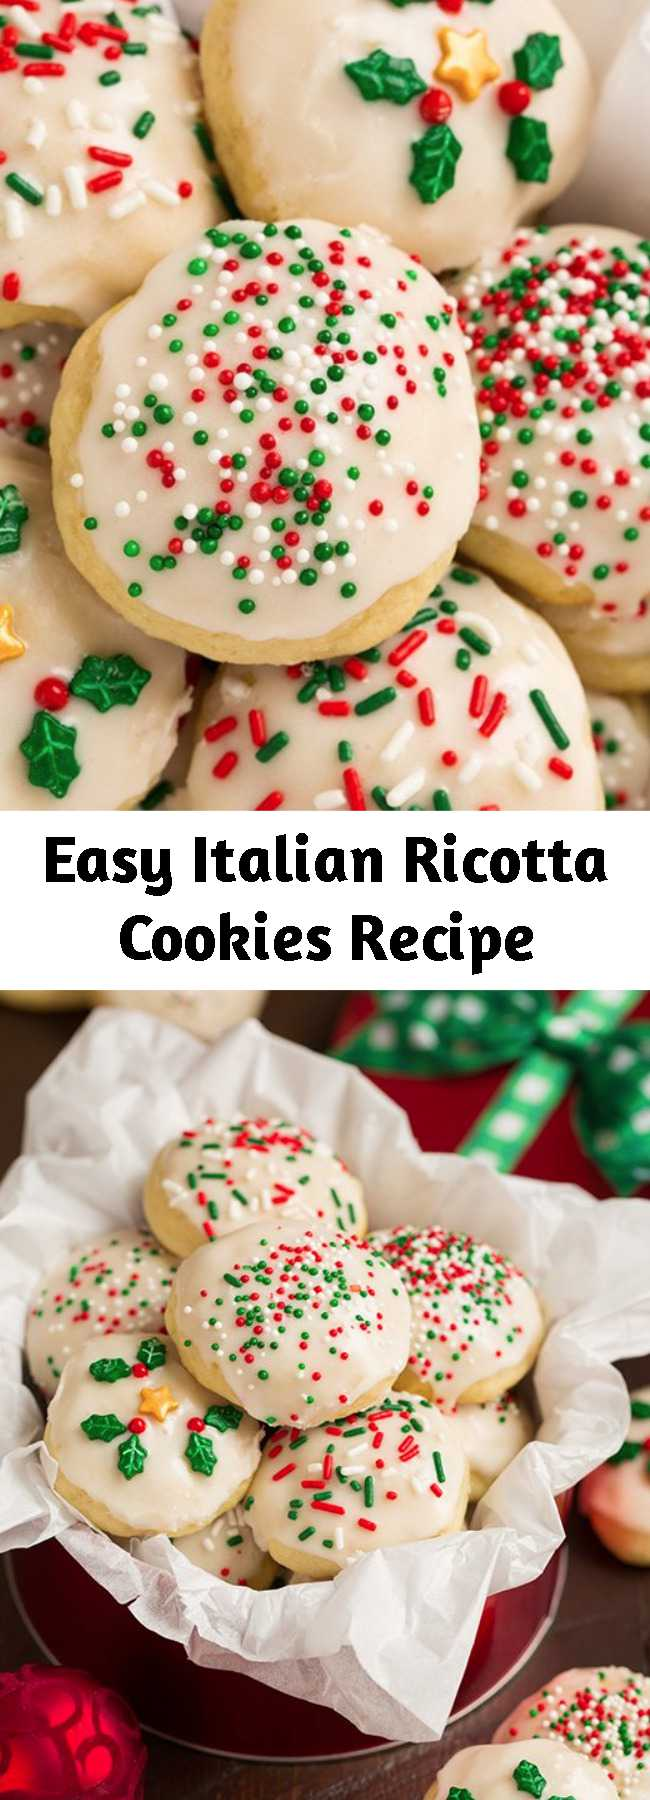 Easy Italian Ricotta Cookies Recipe - Soft and fluffy, melt-in-your-mouth cookies made with rich ricotta (for moisture and flavor) and finished with a sweet glaze. These are so good you can never stop at just one! They're holiday classic and such a fun recipe to try if you've never made them. The dough can be made two days in advance so it's a great make ahead recipe.